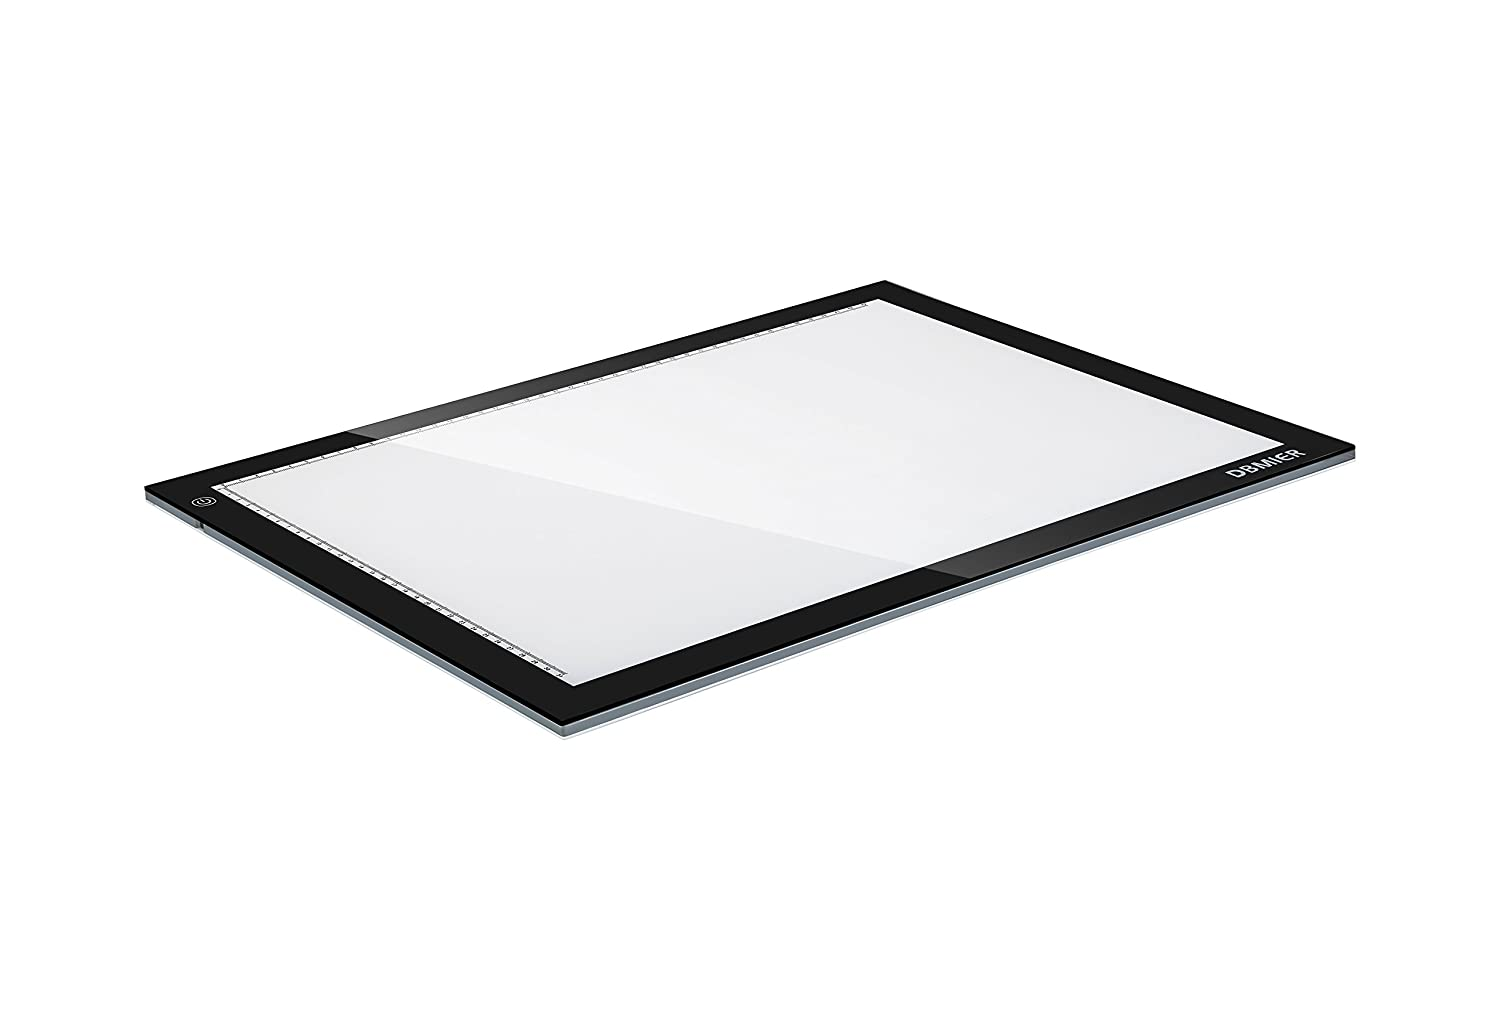 """Amazon.com: Dbmier A3 LED Ultra-Thin Tracing Light Pad Adjustable Light Box - 12.20"""" X 16.93"""" Ideal for 2D Animation, Calligraphy, Tattoo, ..."""